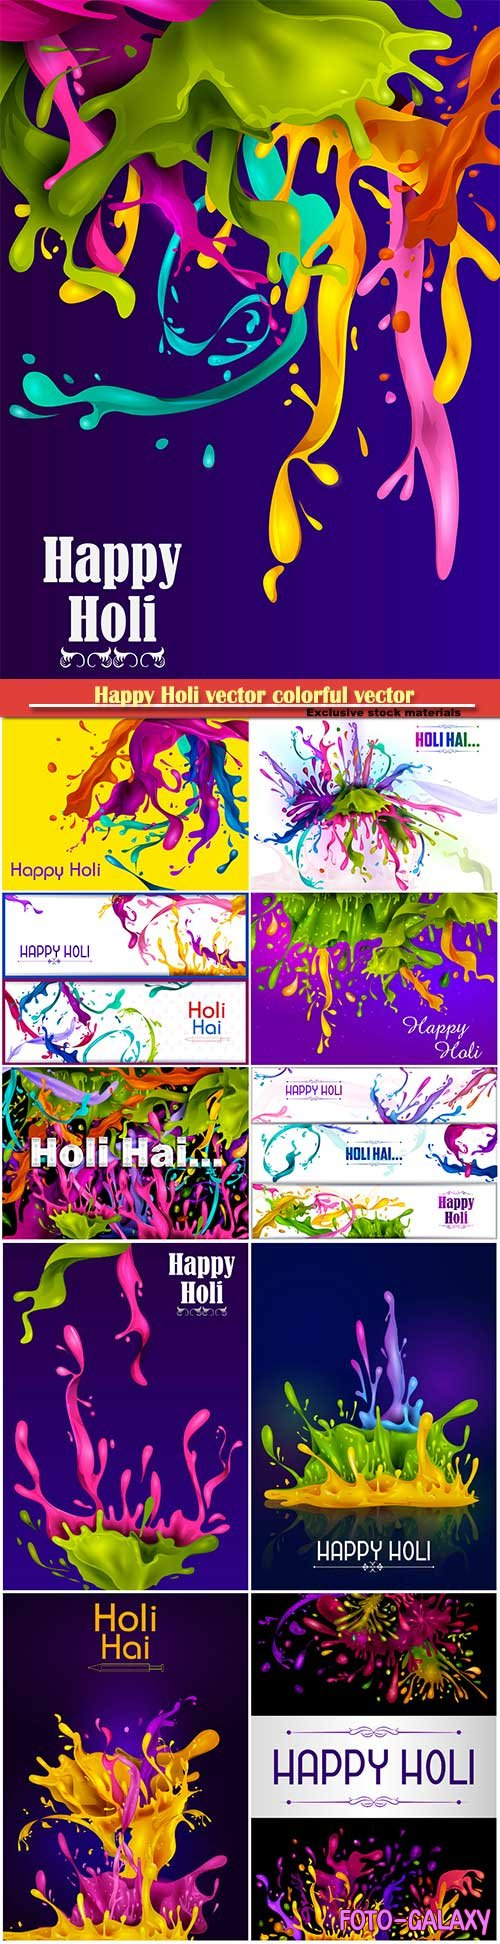 Happy Holi vector colorful vector illustration